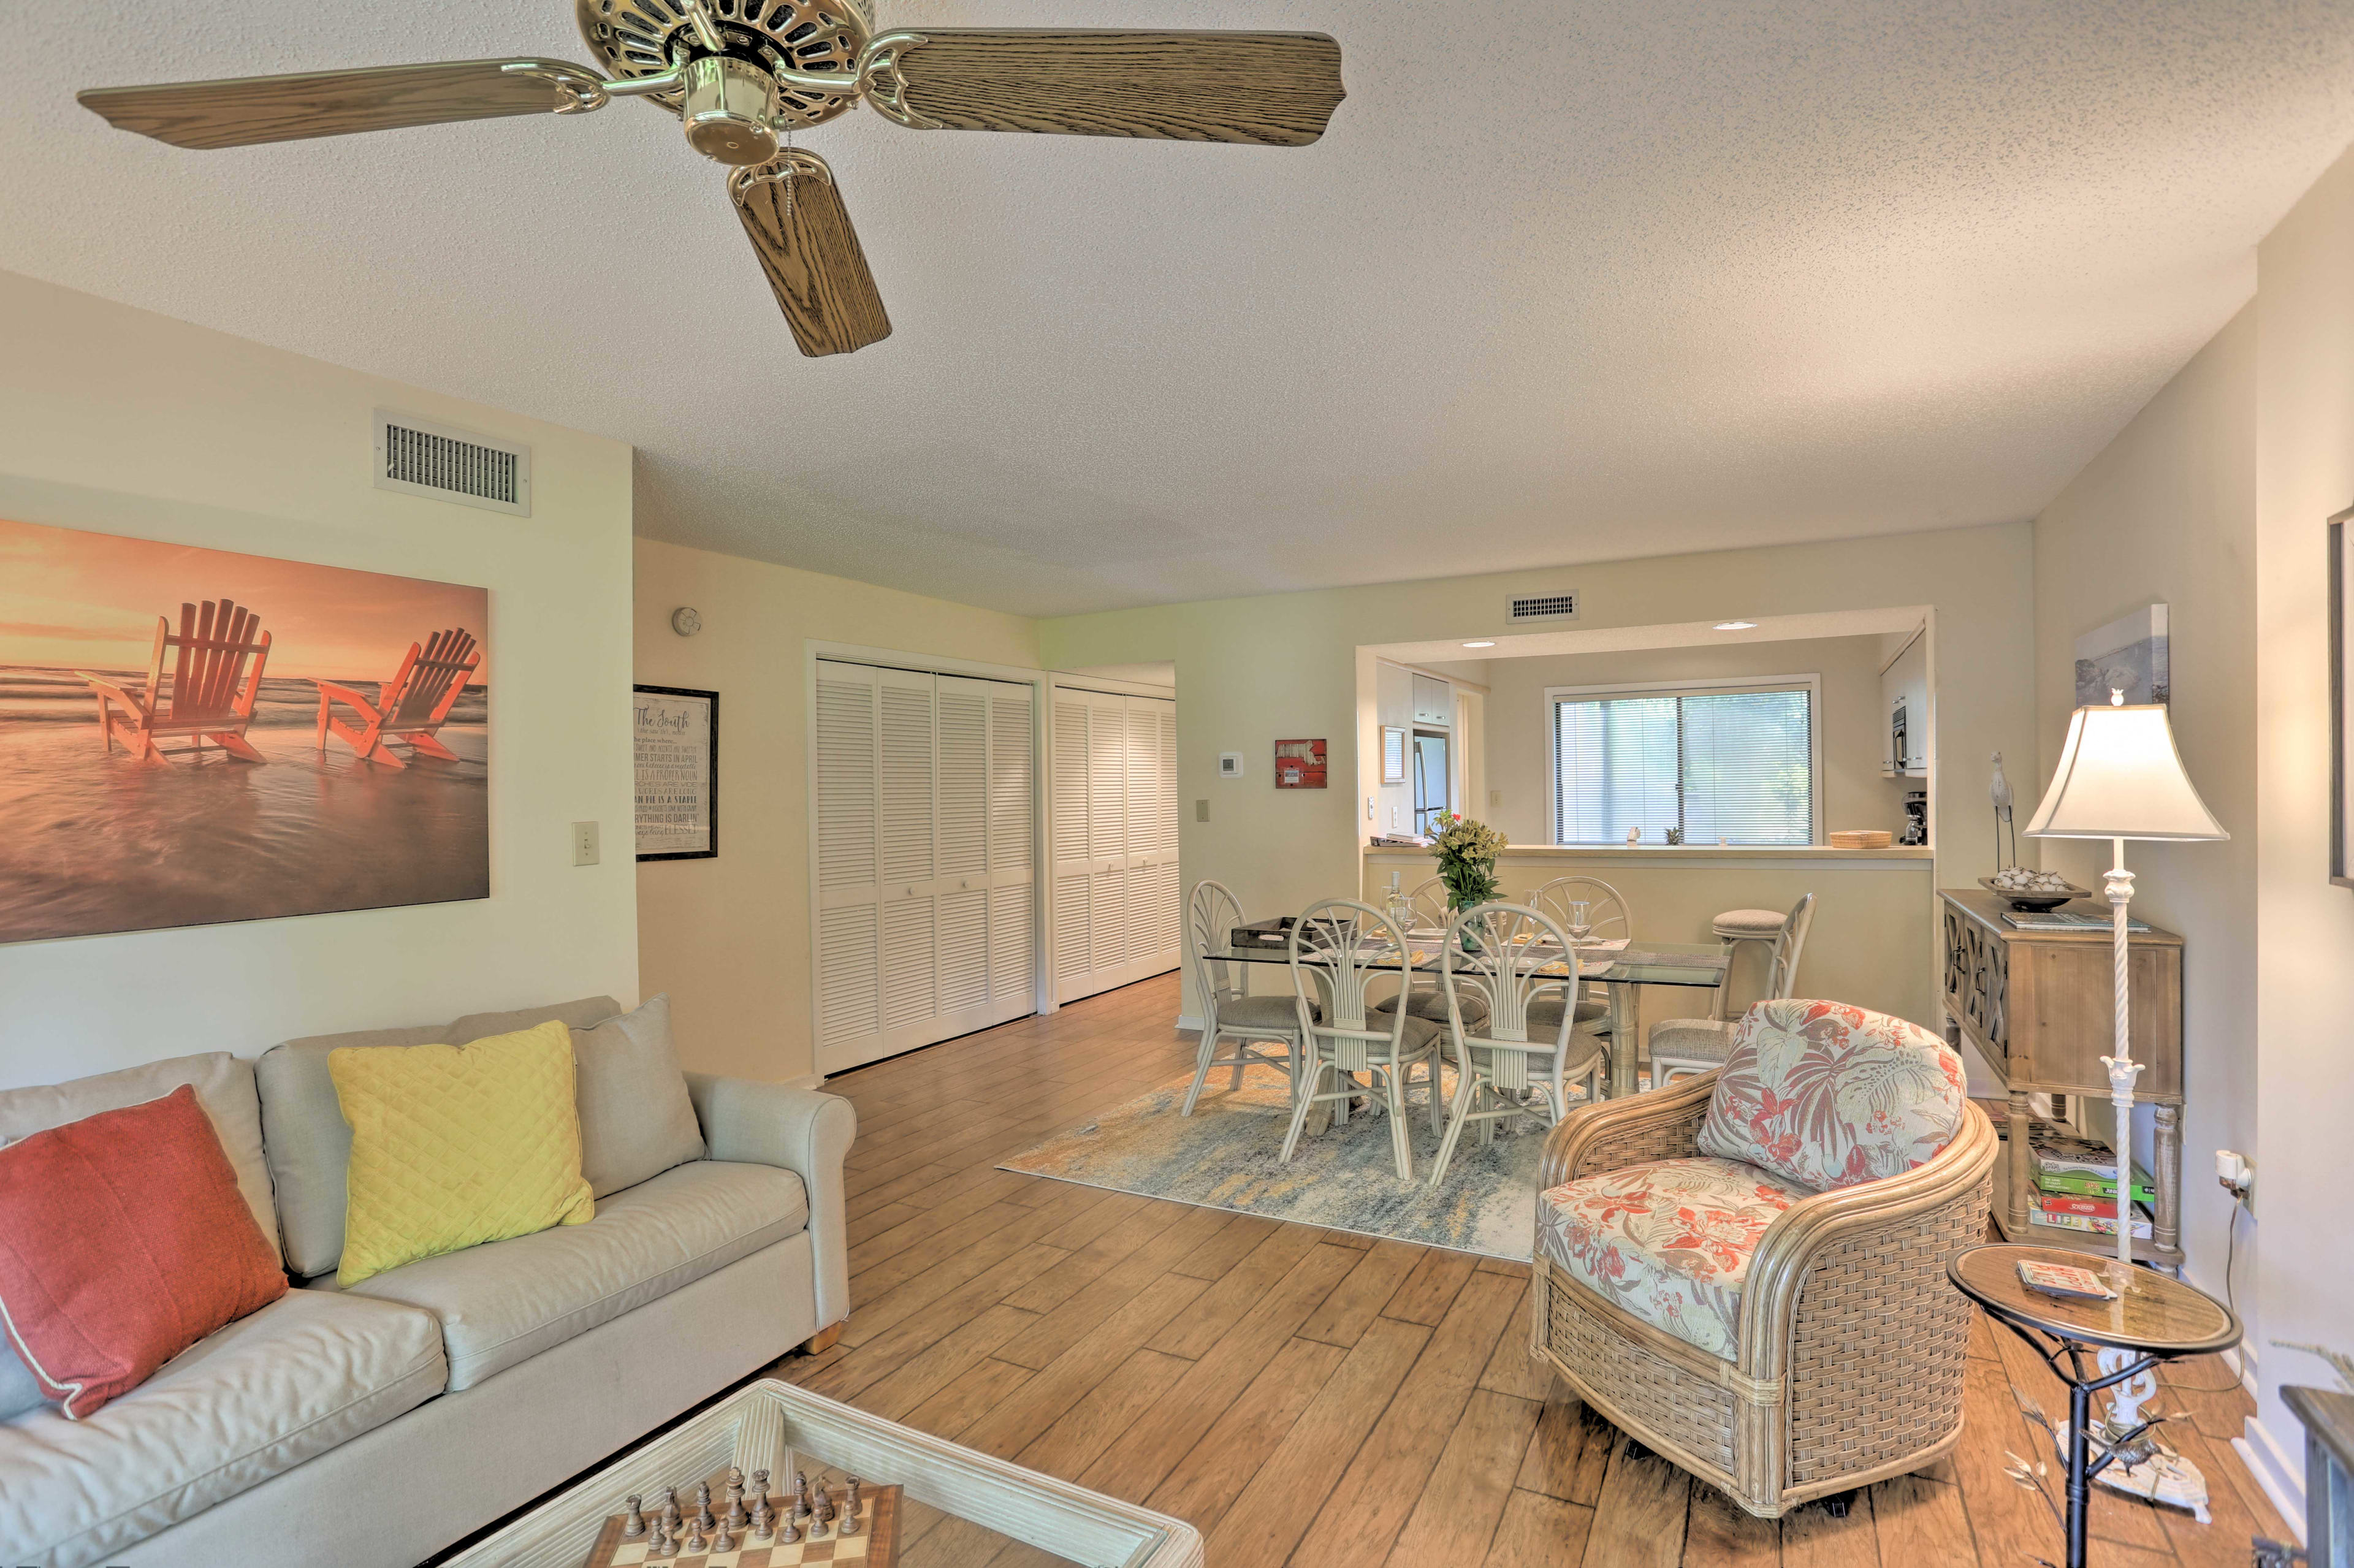 Living Room | Board Games Provided